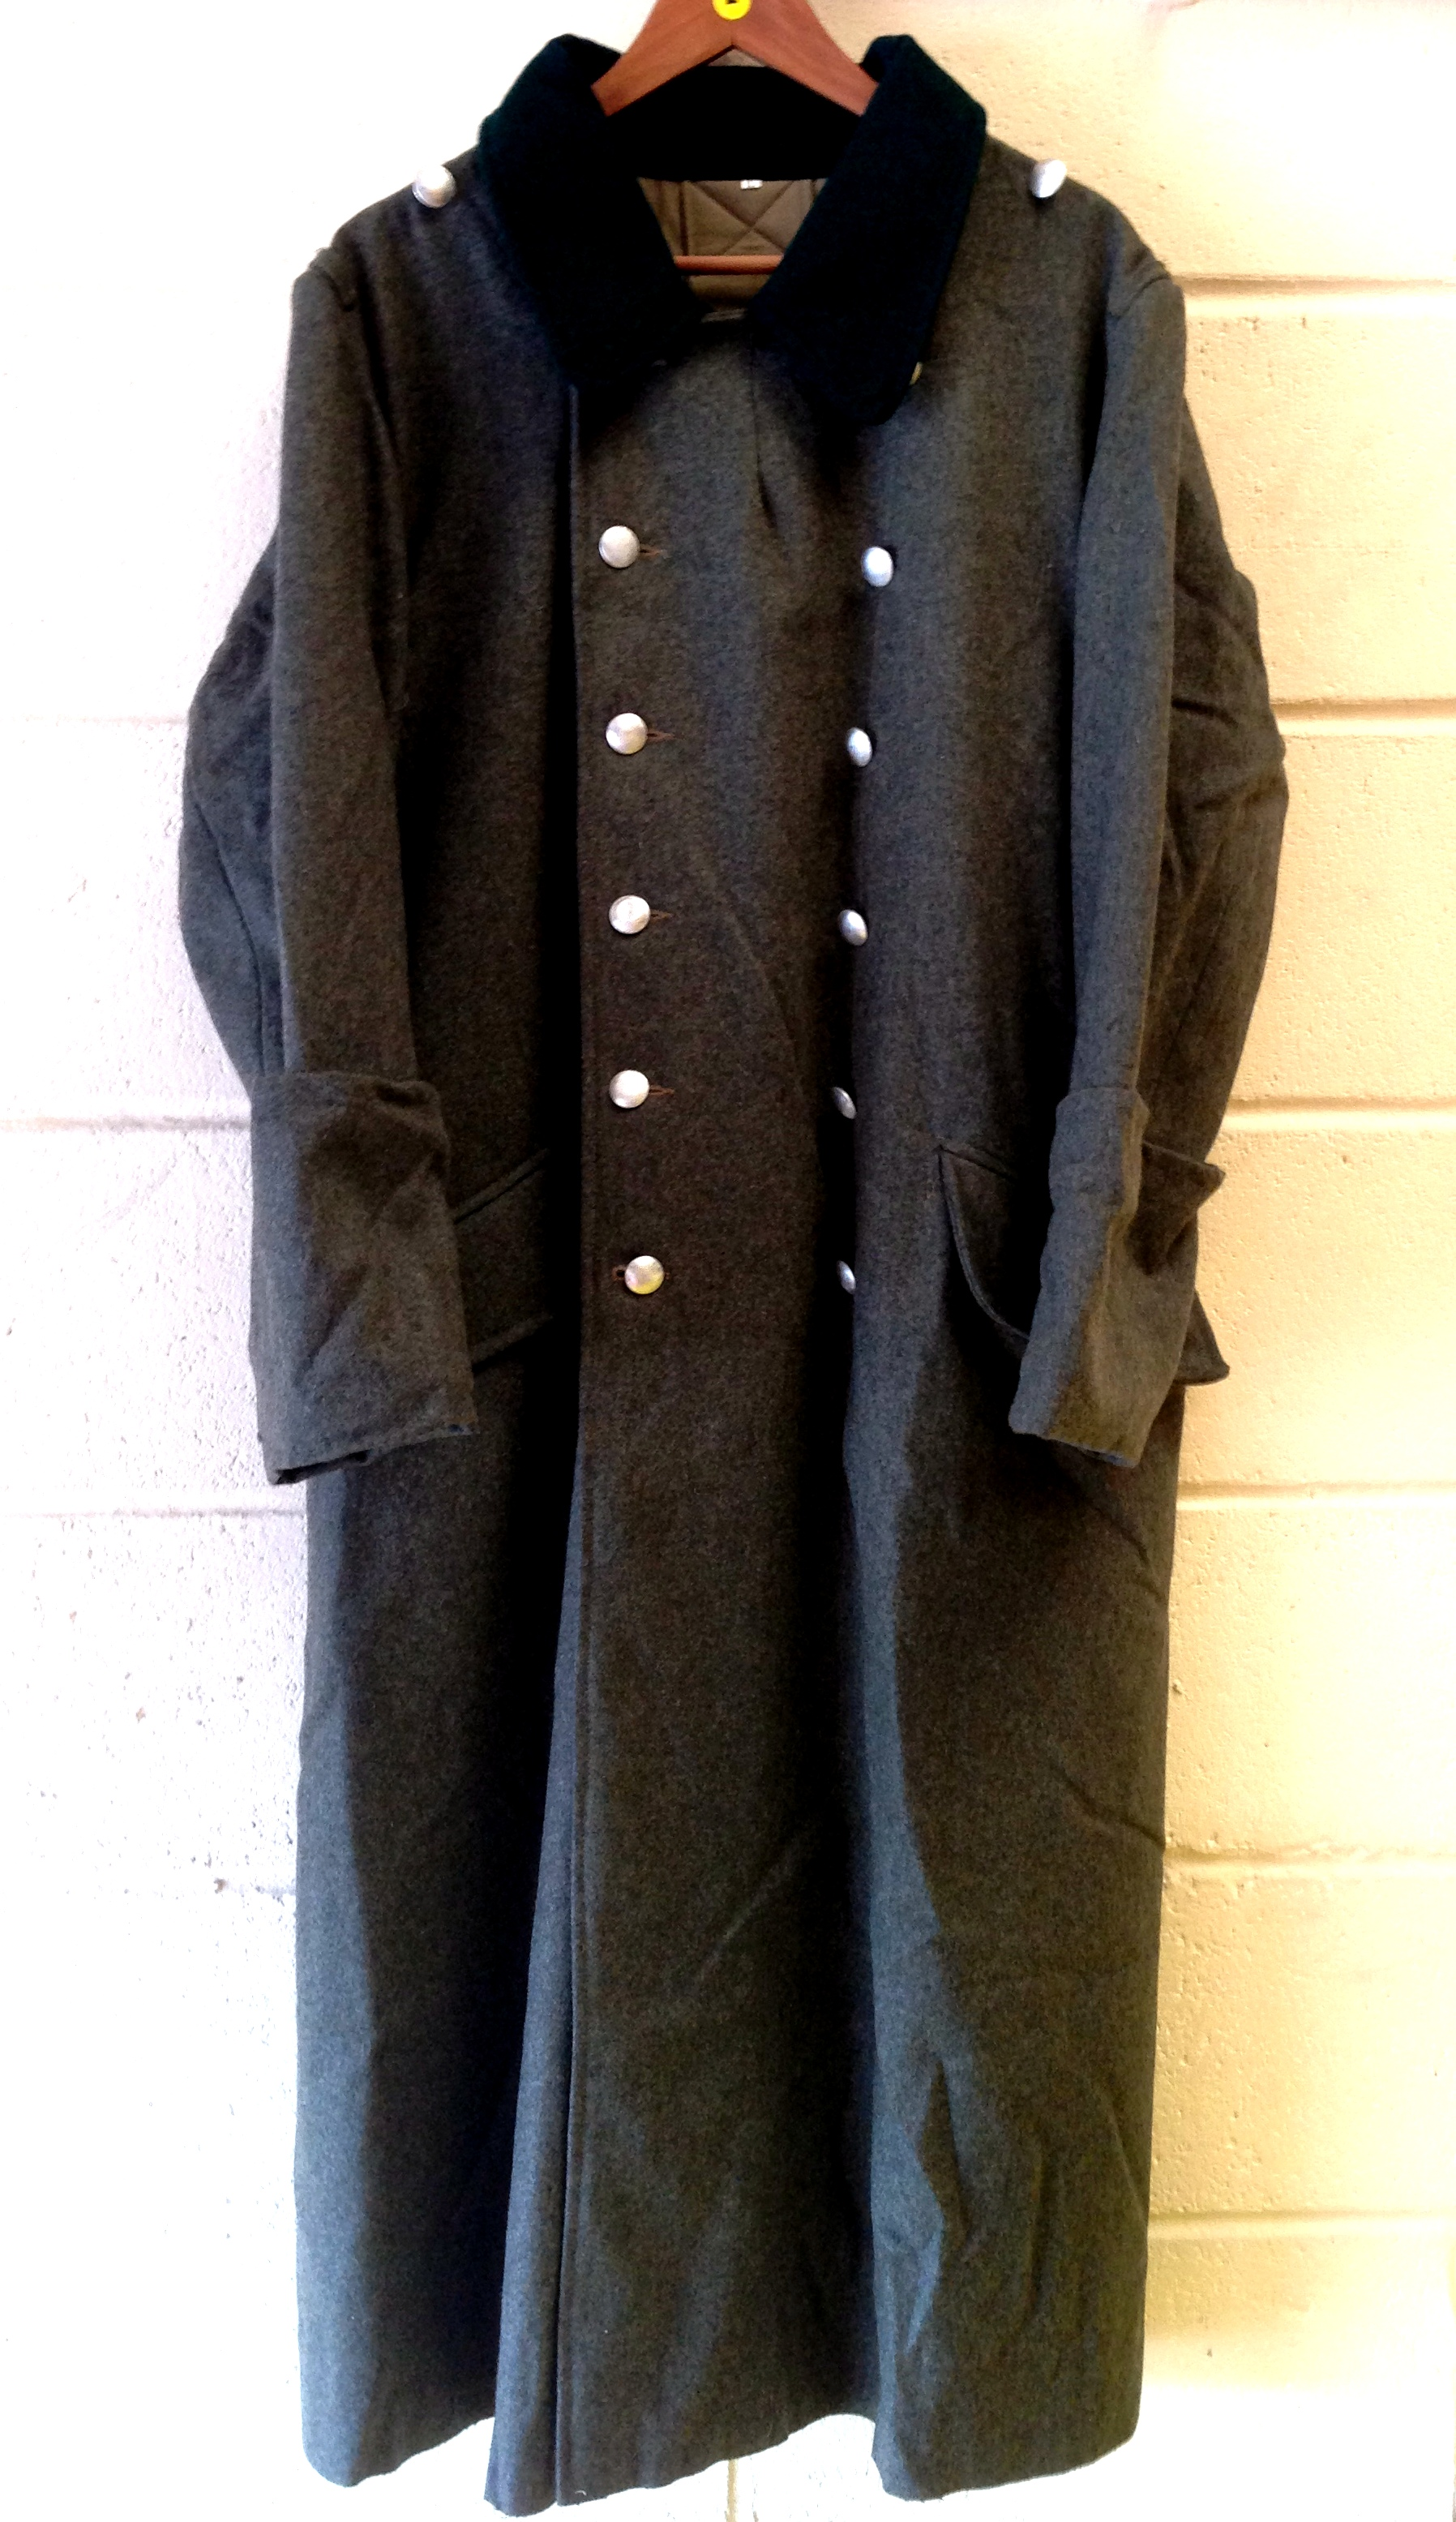 WW2 German Heer M36 Field Green Wool Greatcoat - Click Image to Close